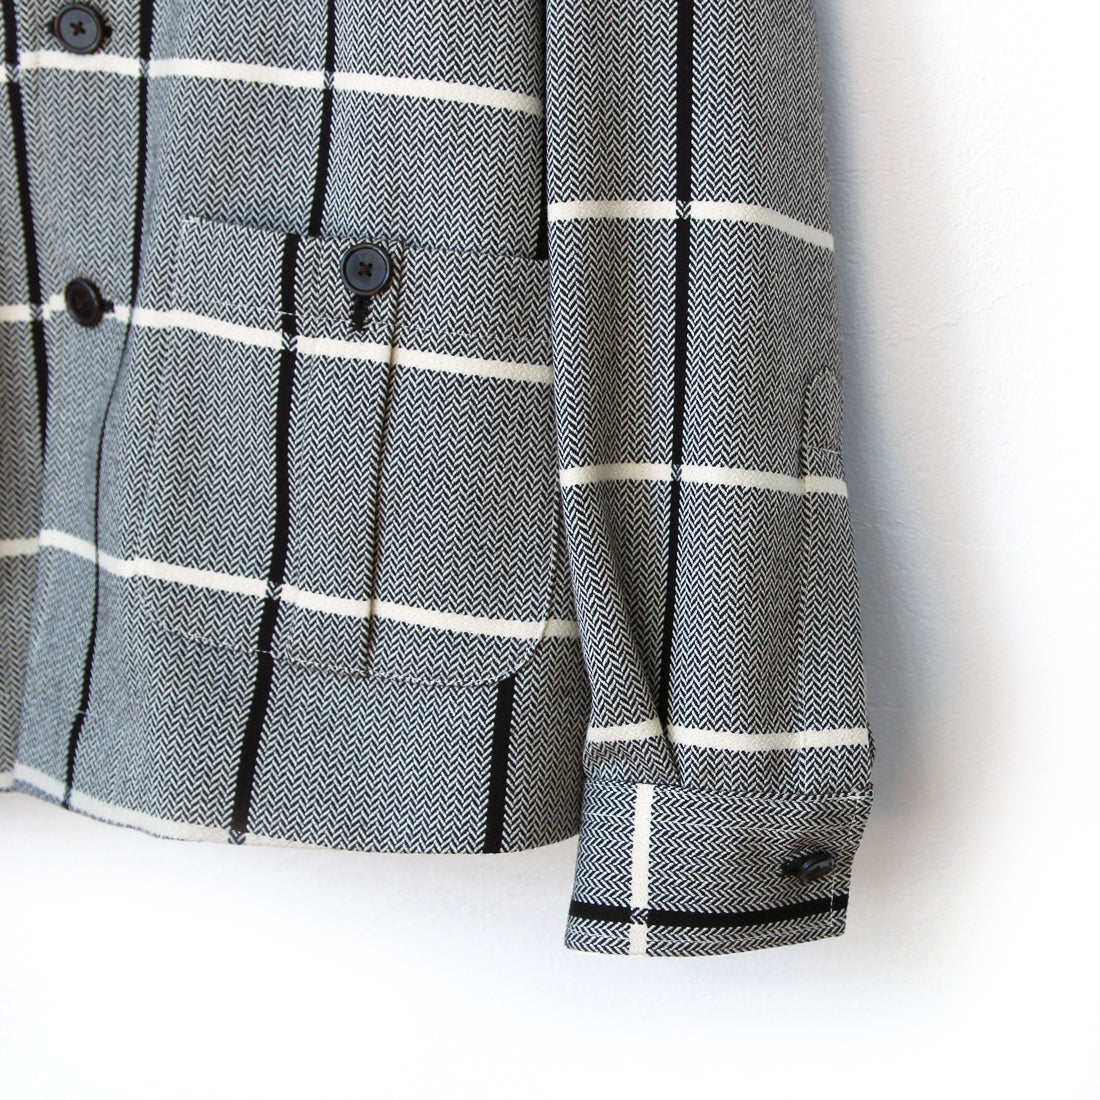 Beggars Run - Checkered Mason Jacket (black & white)